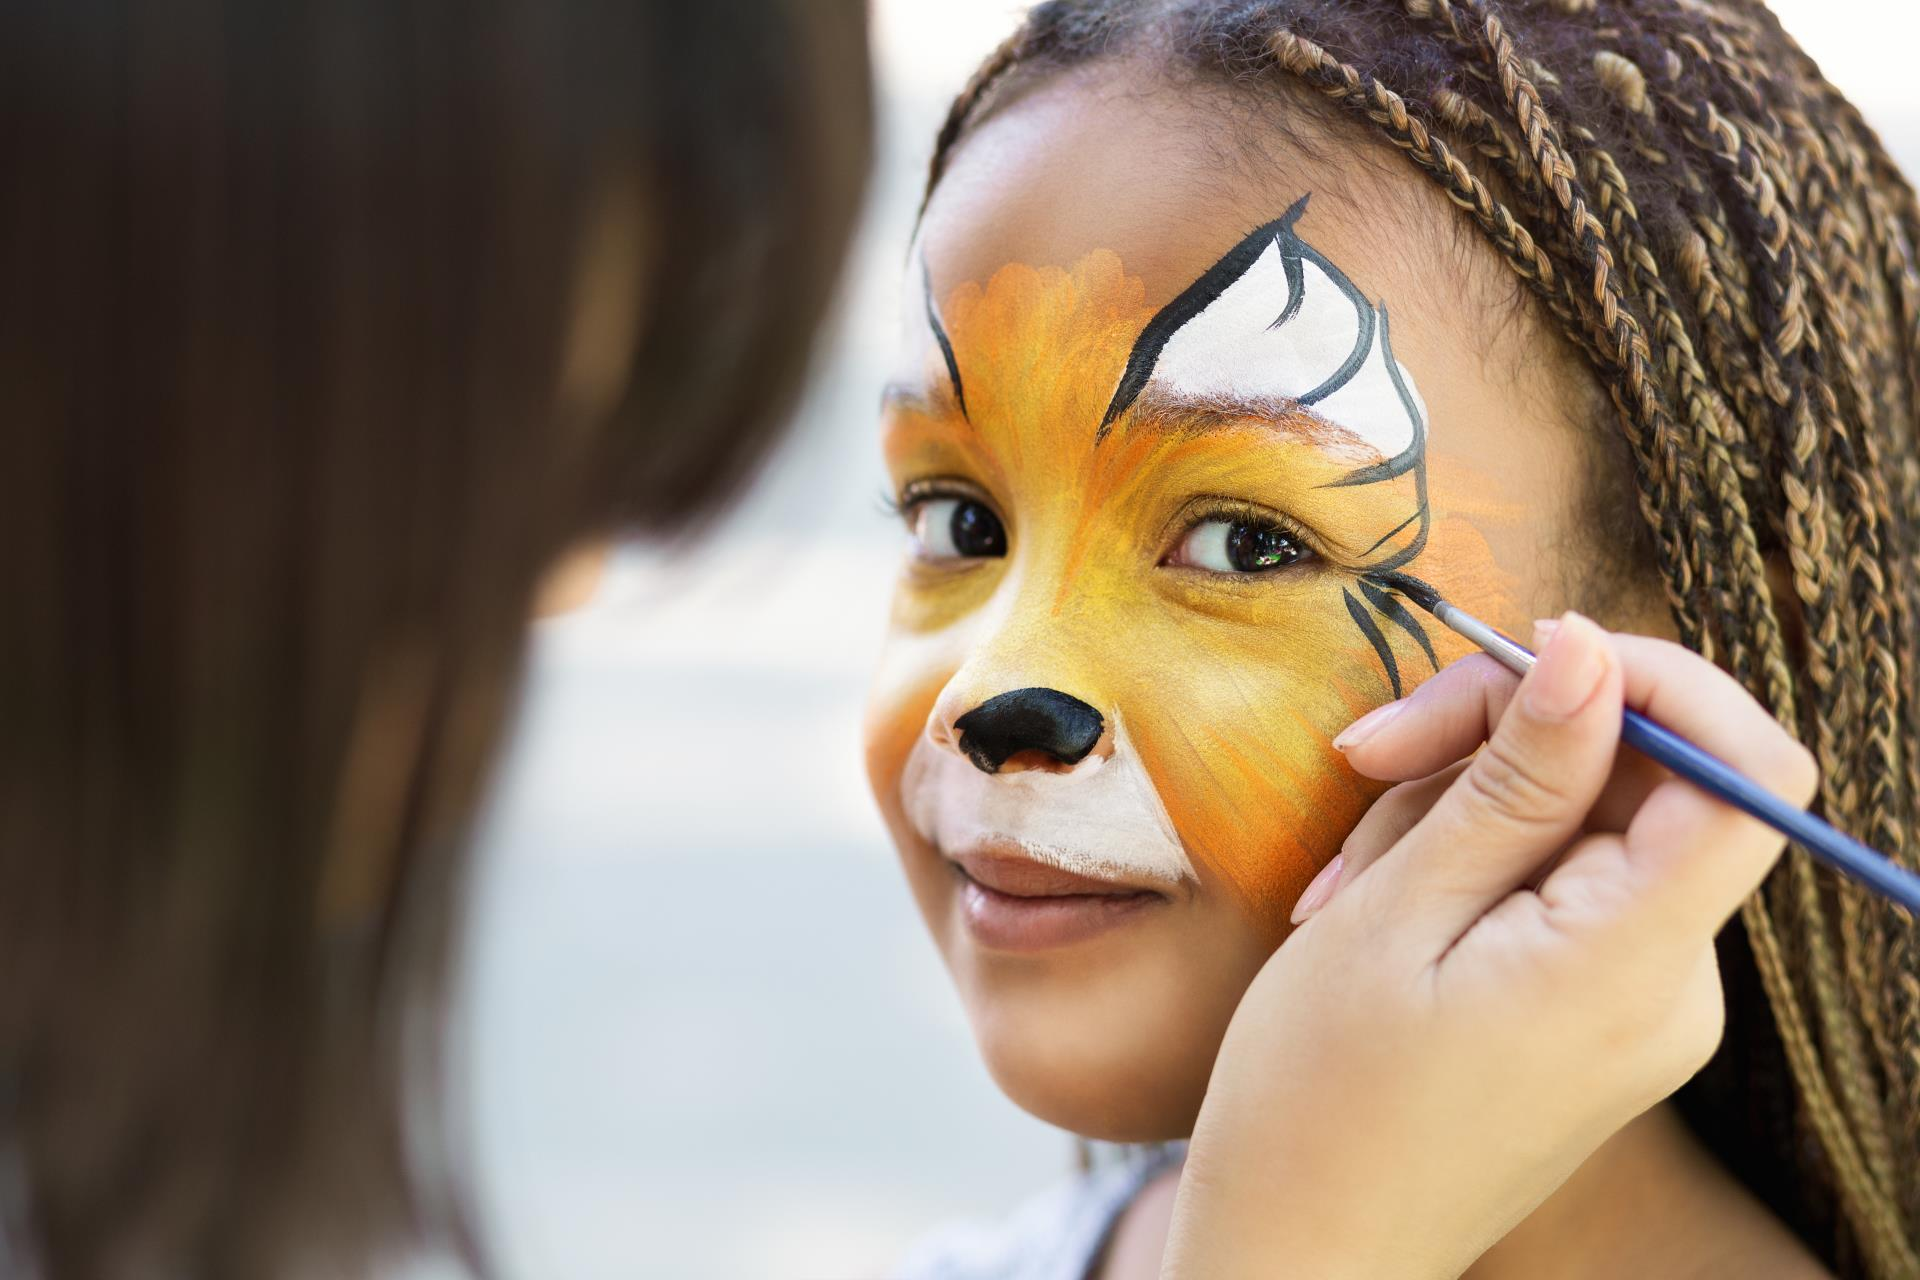 child having face painted like a tiger